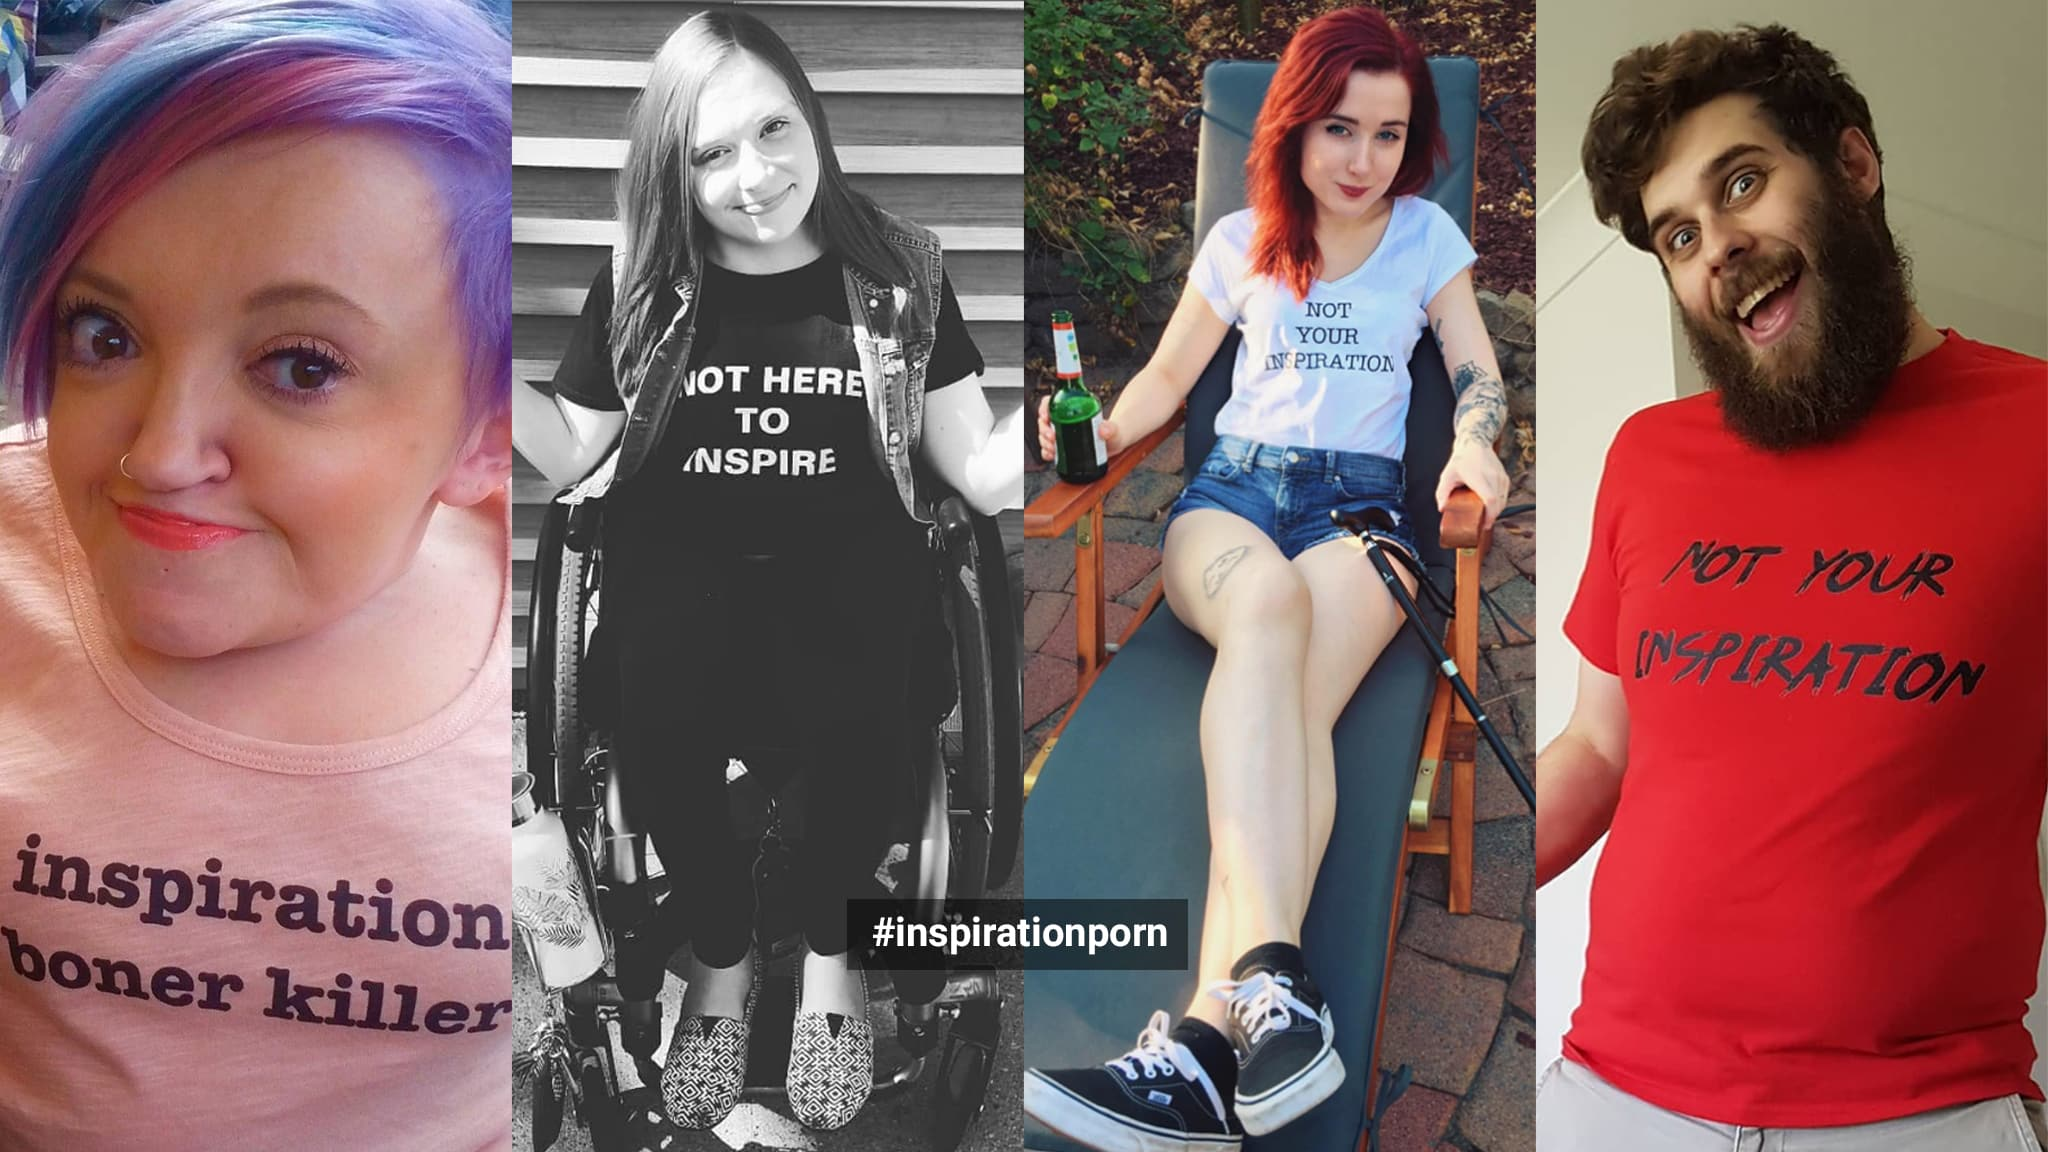 Montage Of 4 Images Of Disabled People In Various Poses Wearing T-Shirts Condemning Being Used As Inspiration Porn